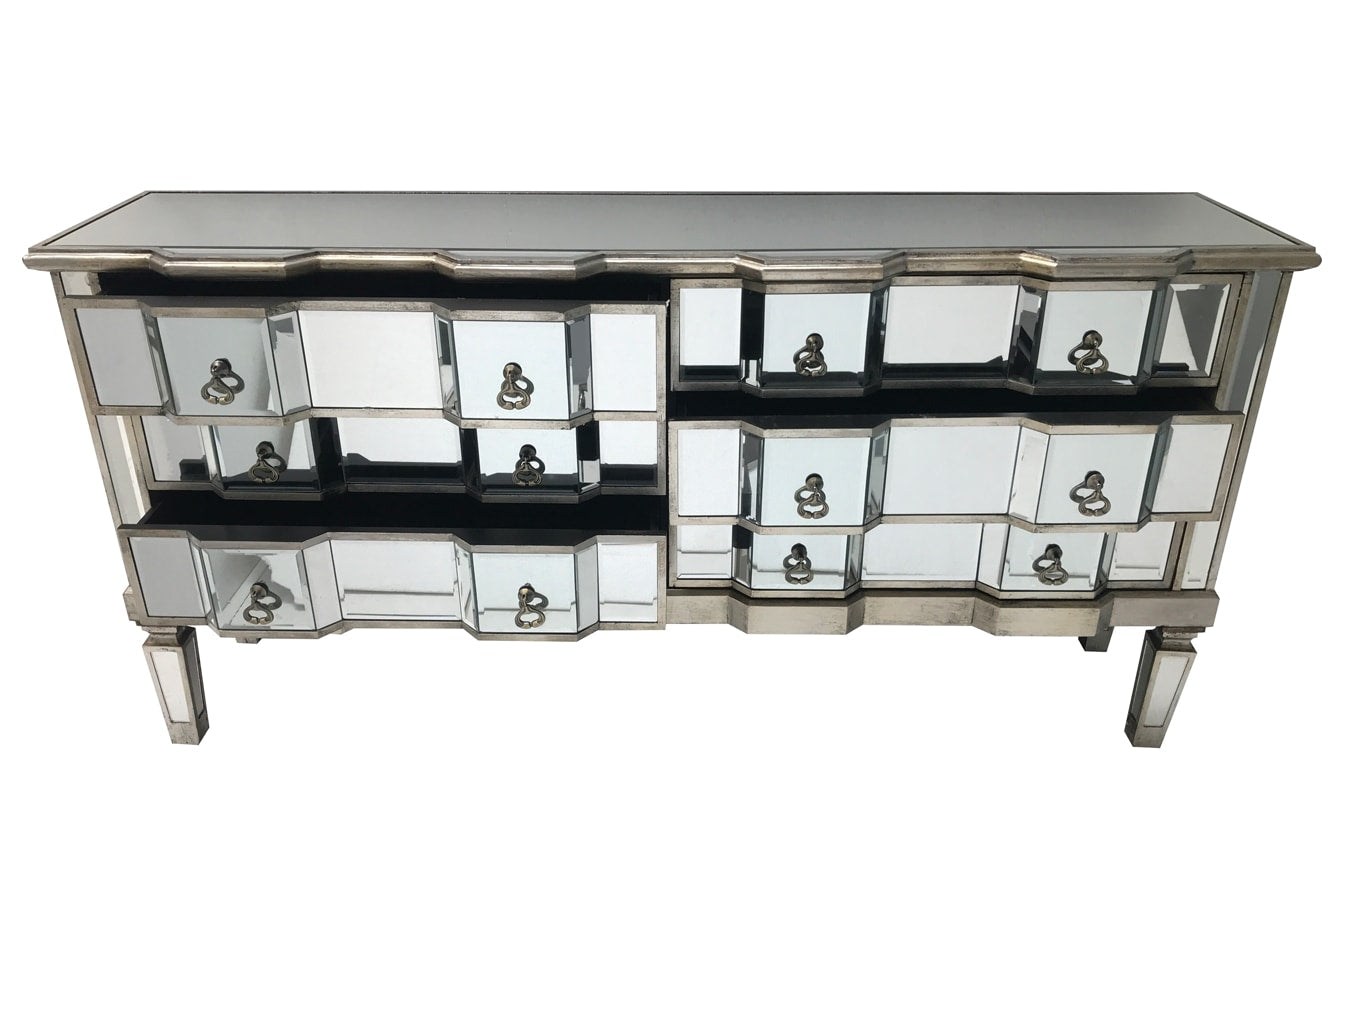 Charleston mirrored chest with 6 long drawers, brass drop handles, wood and mirror, antiqued silver